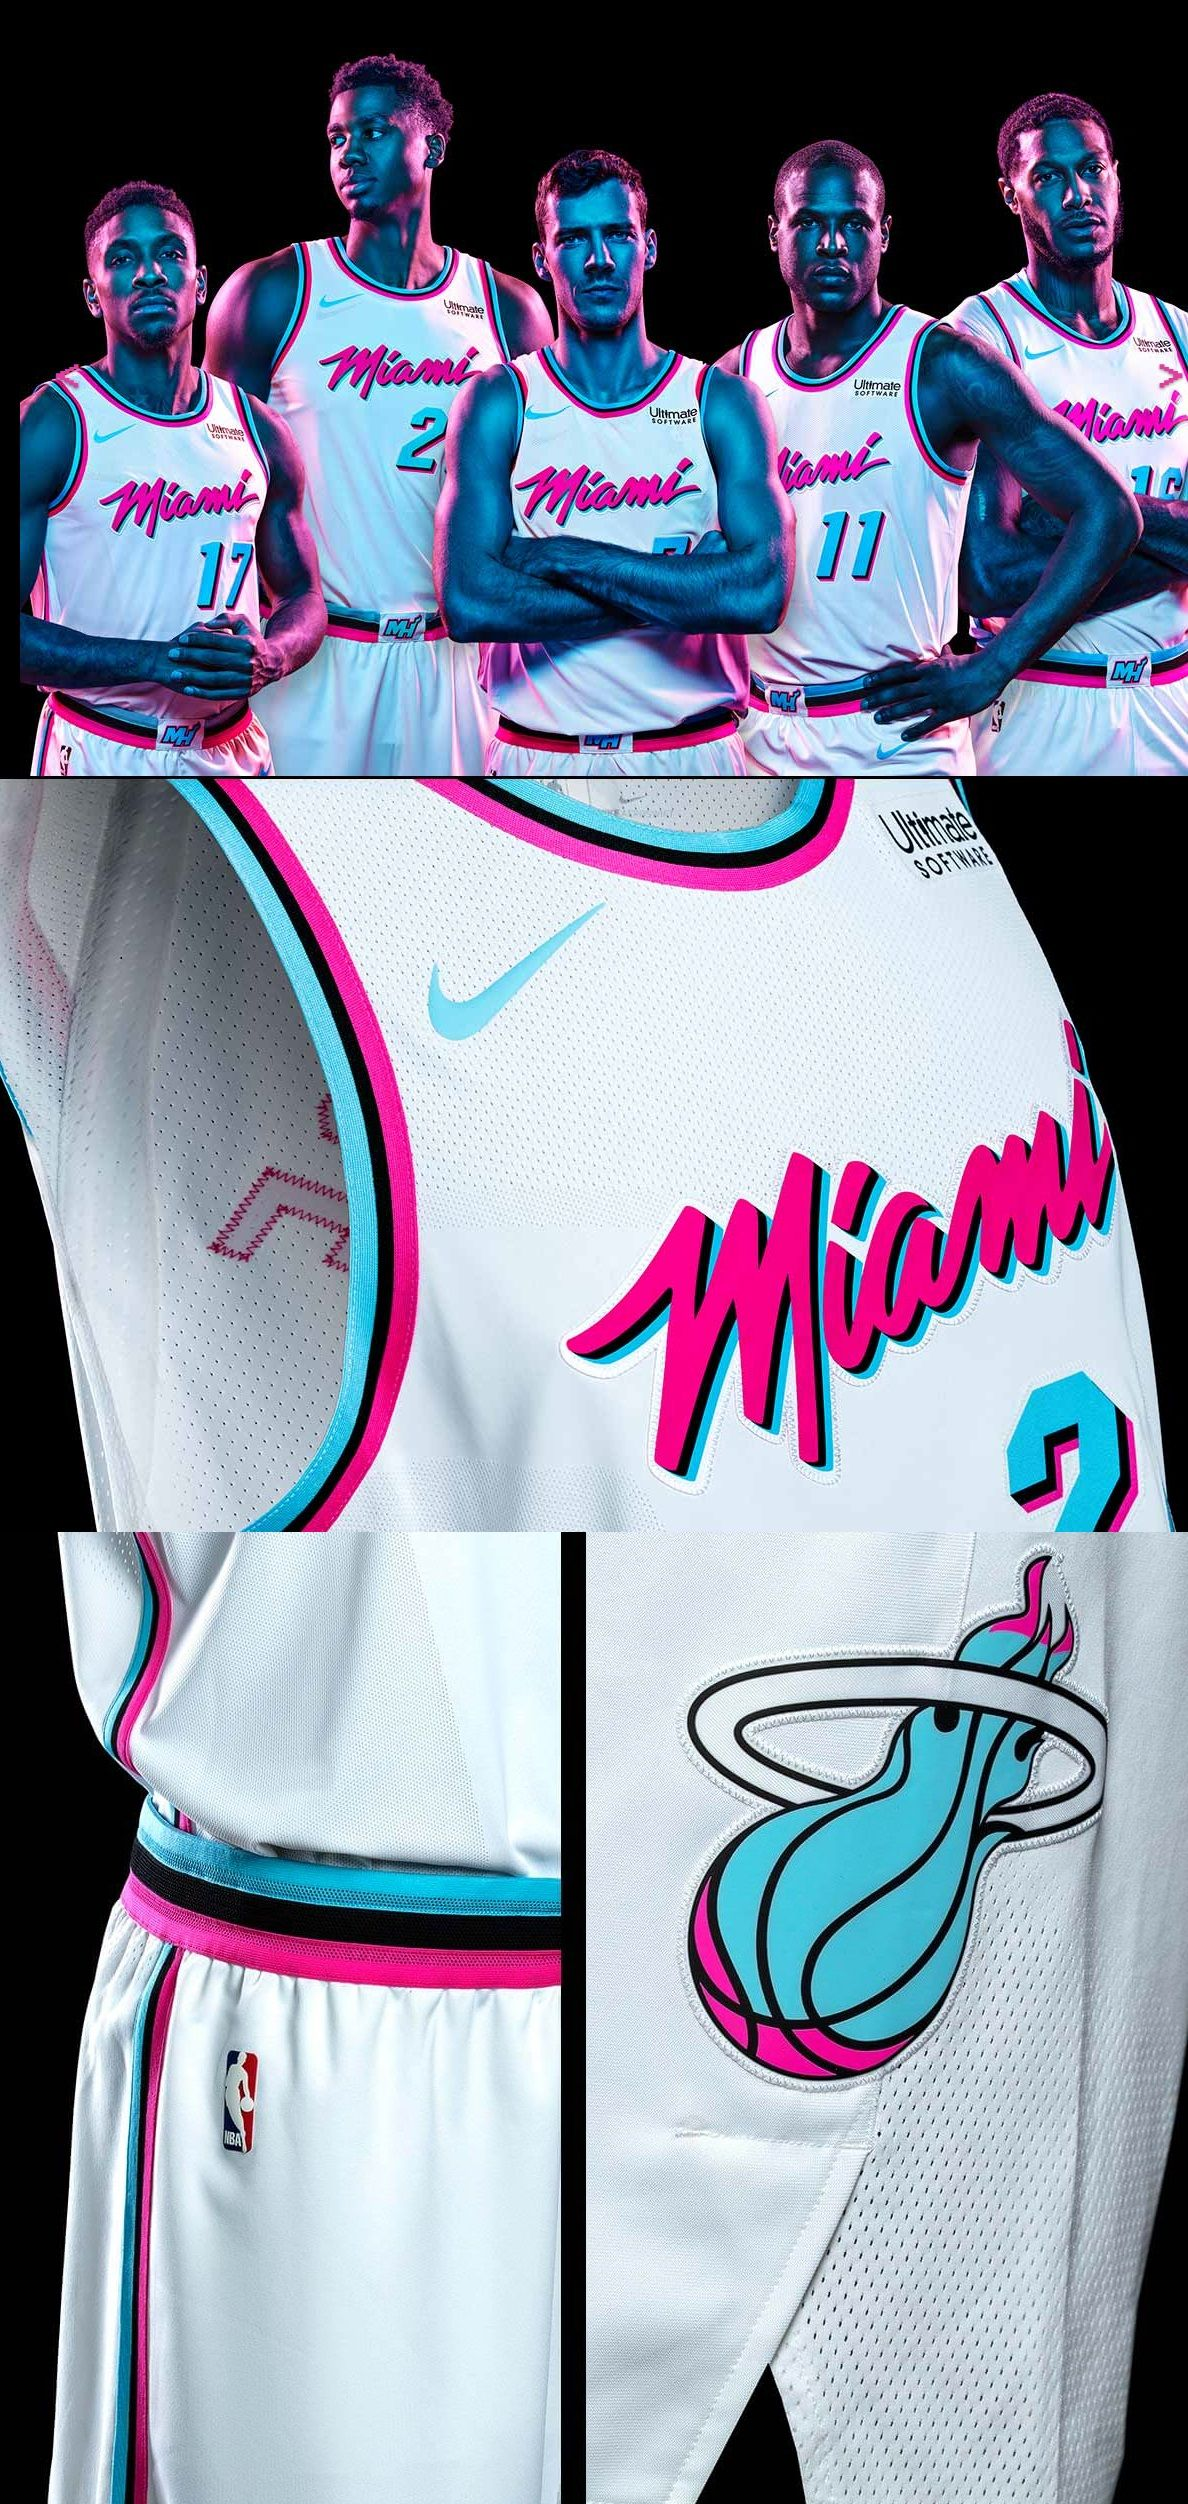 242cff764f5 Miami Heat  Vice  City Edition Unis  MiamiHeat  MiamiCulture  NBA ...